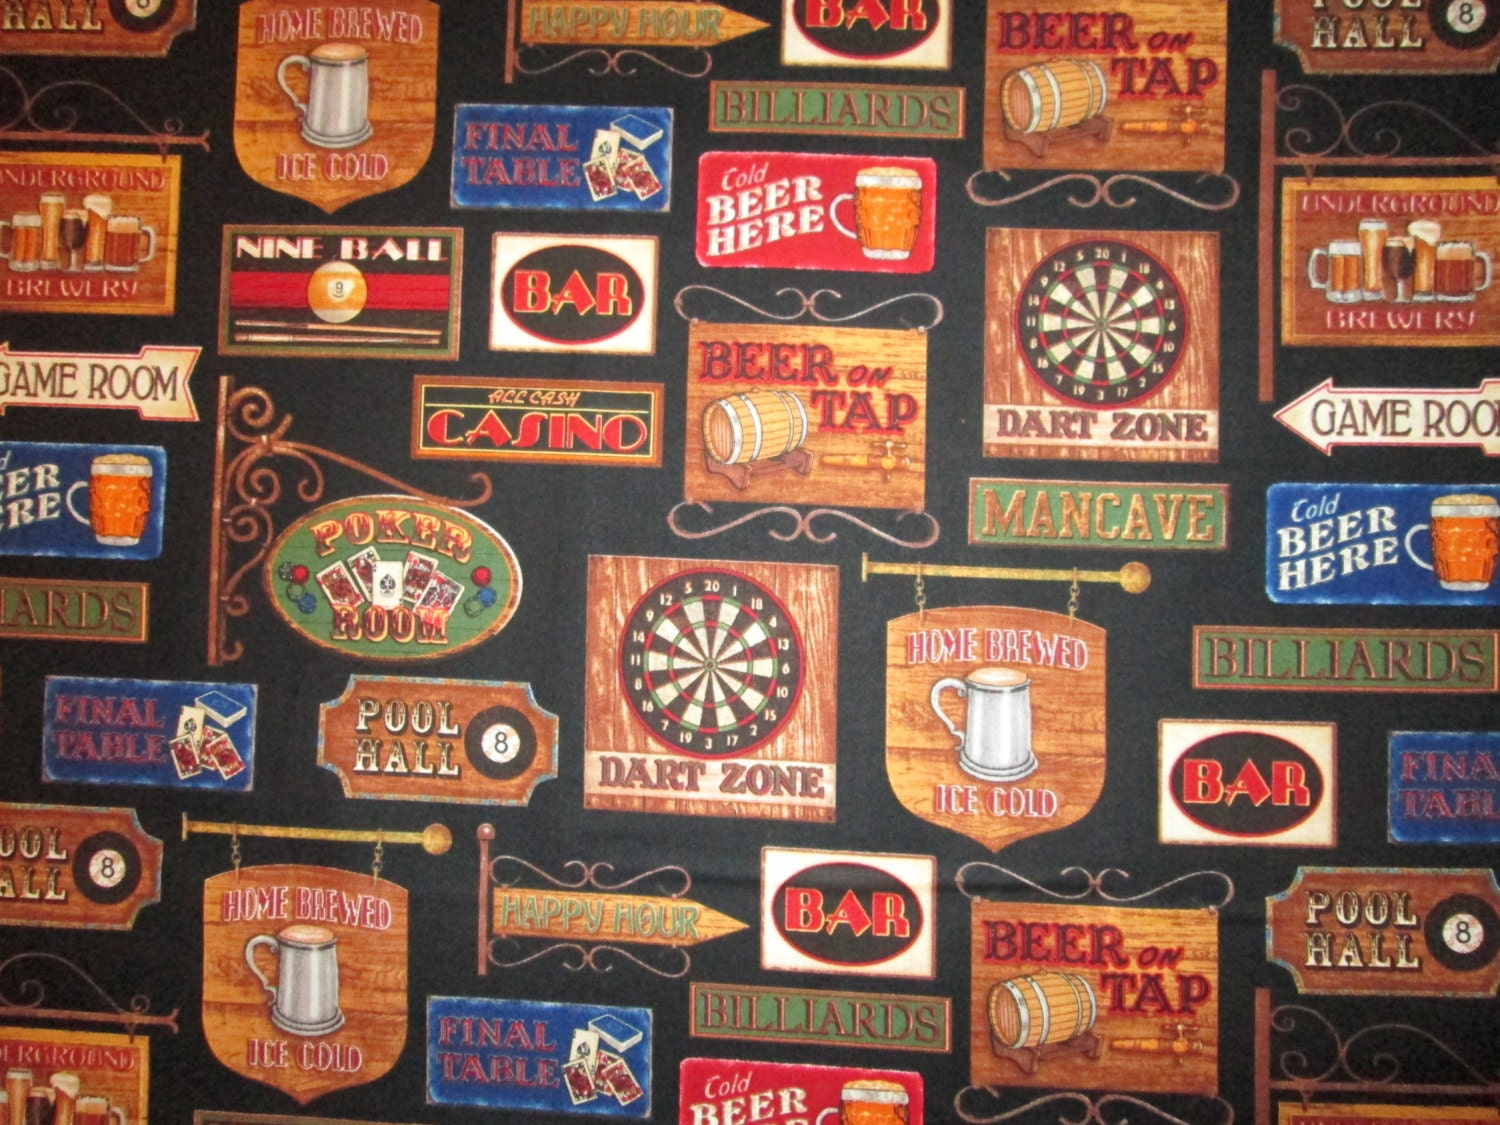 Man Cave Uncut : Beer game room signs man cave black cotton fabric fat